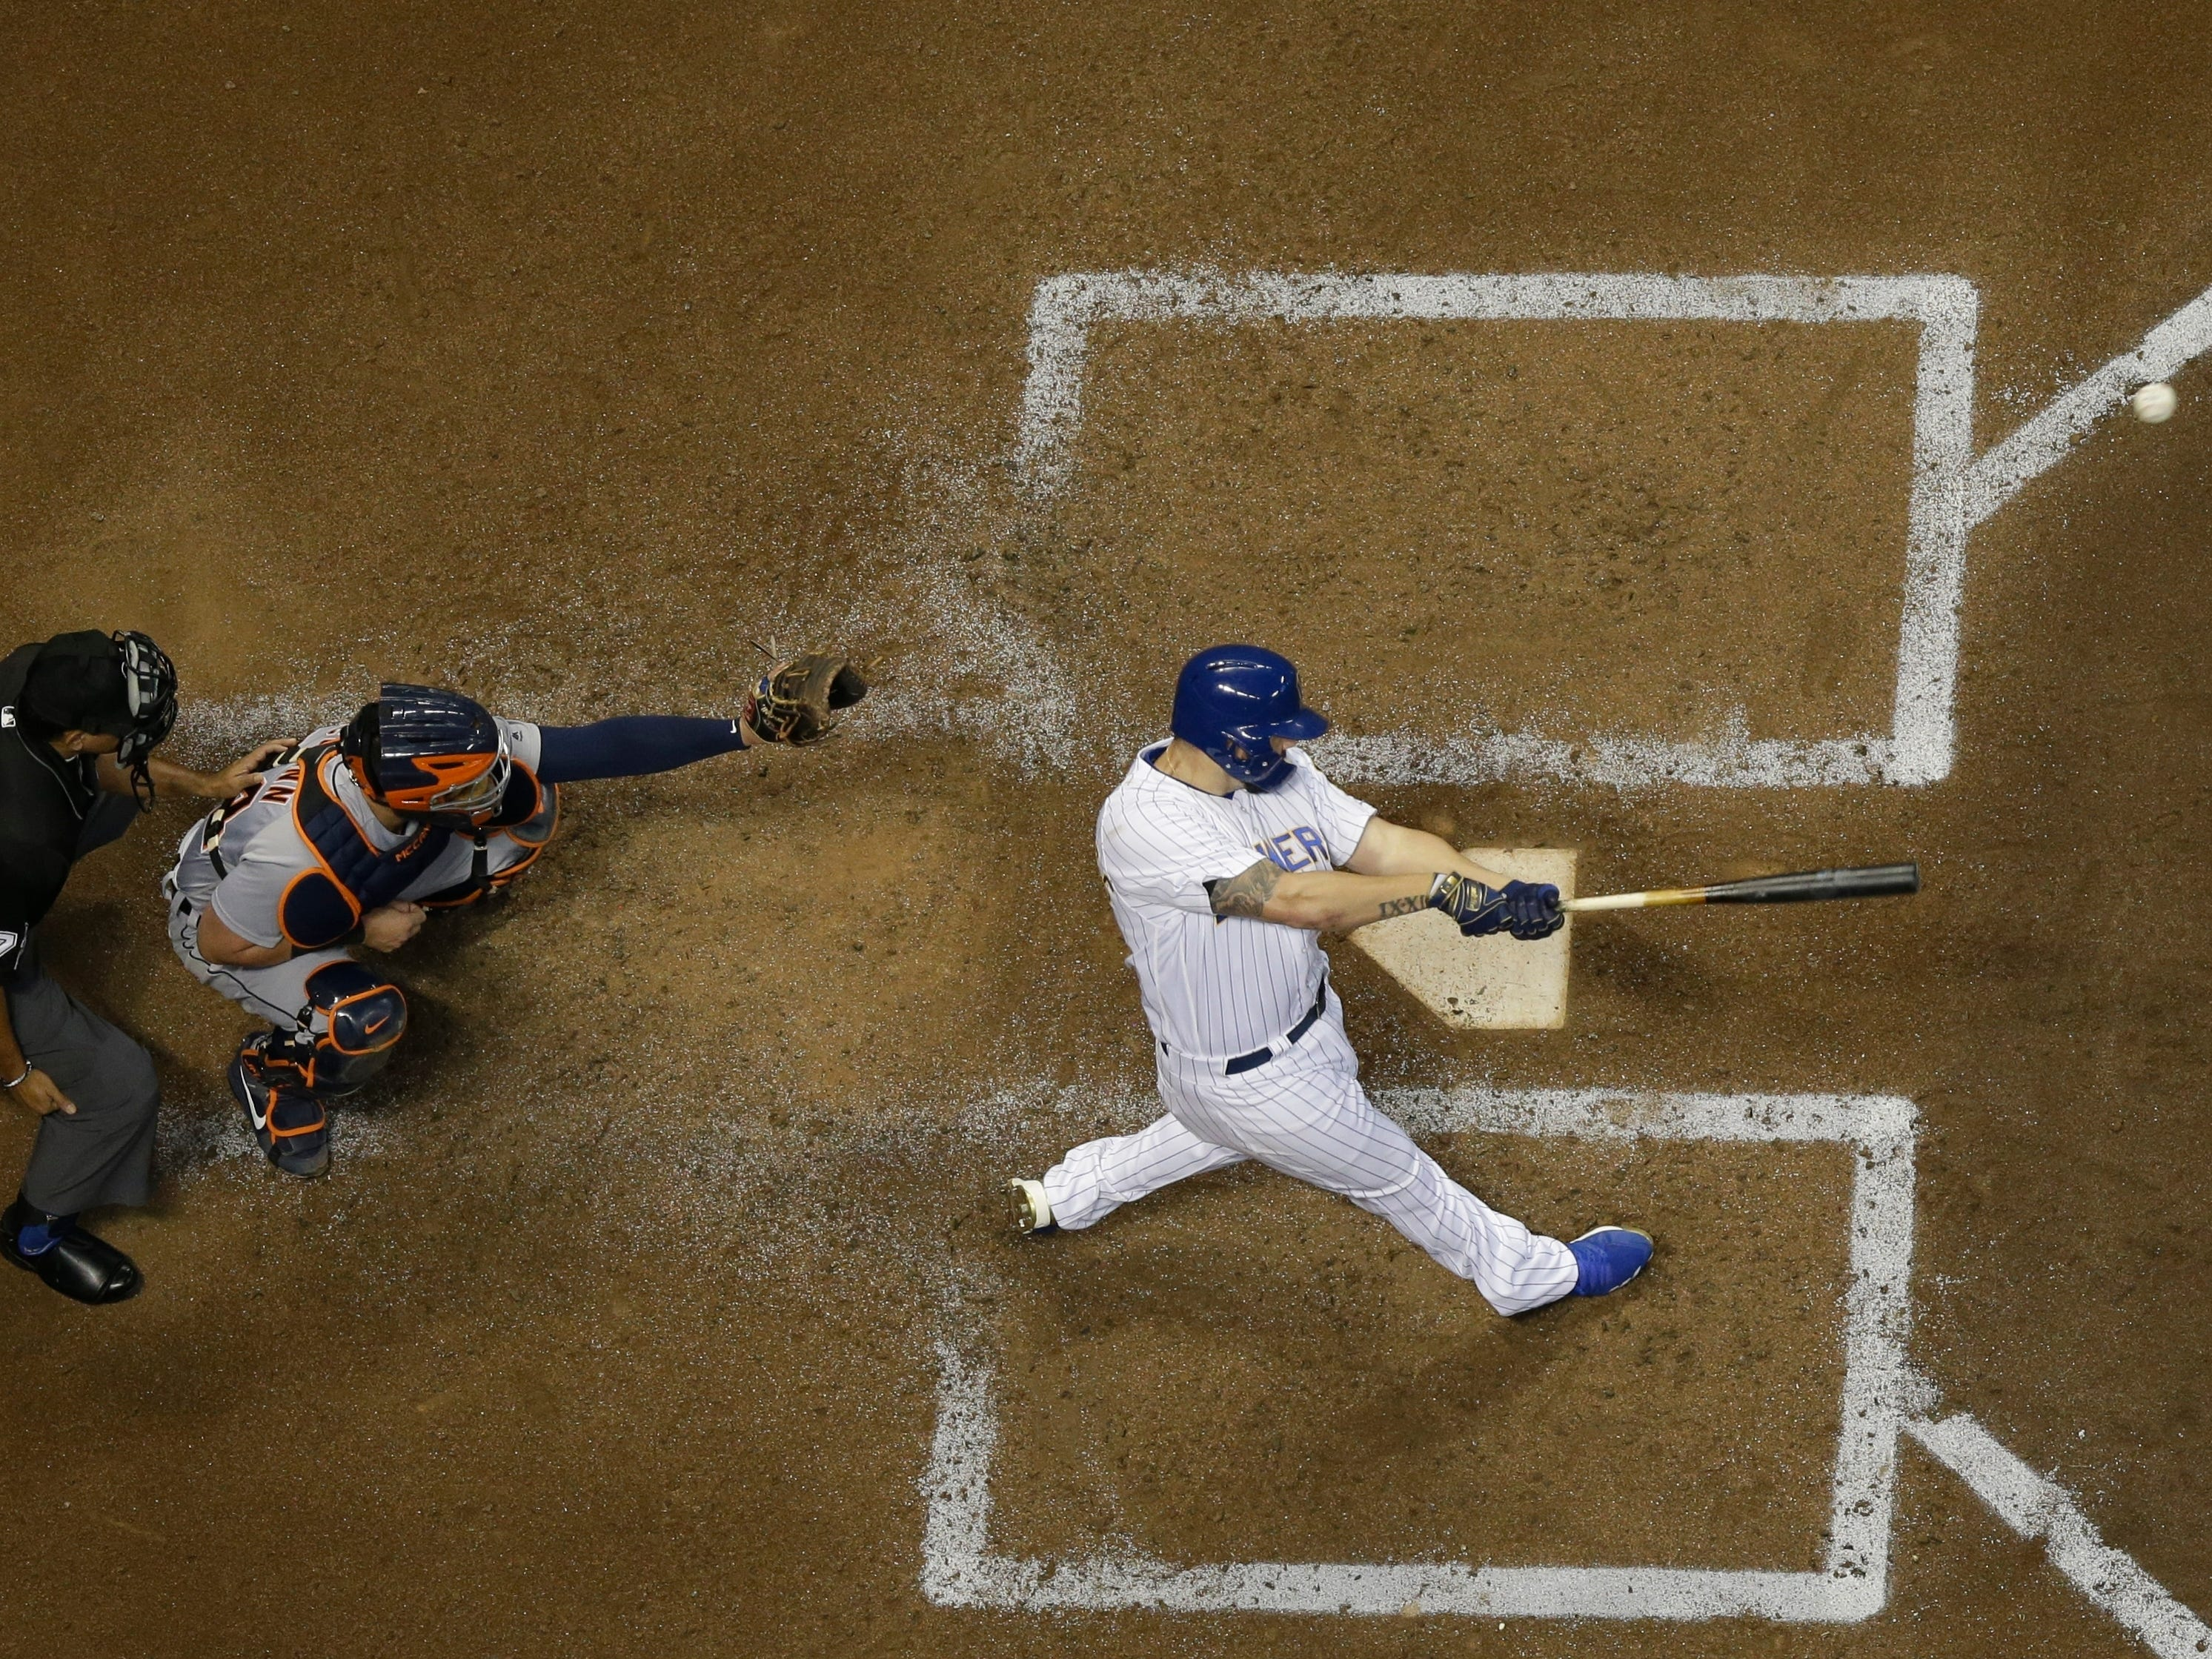 Milwaukee Brewers' Mike Moustakas hits an RBI single during the third inning against the Detroit Tigers, Friday, Sept. 28, 2018, in Milwaukee. James McCann is catching.